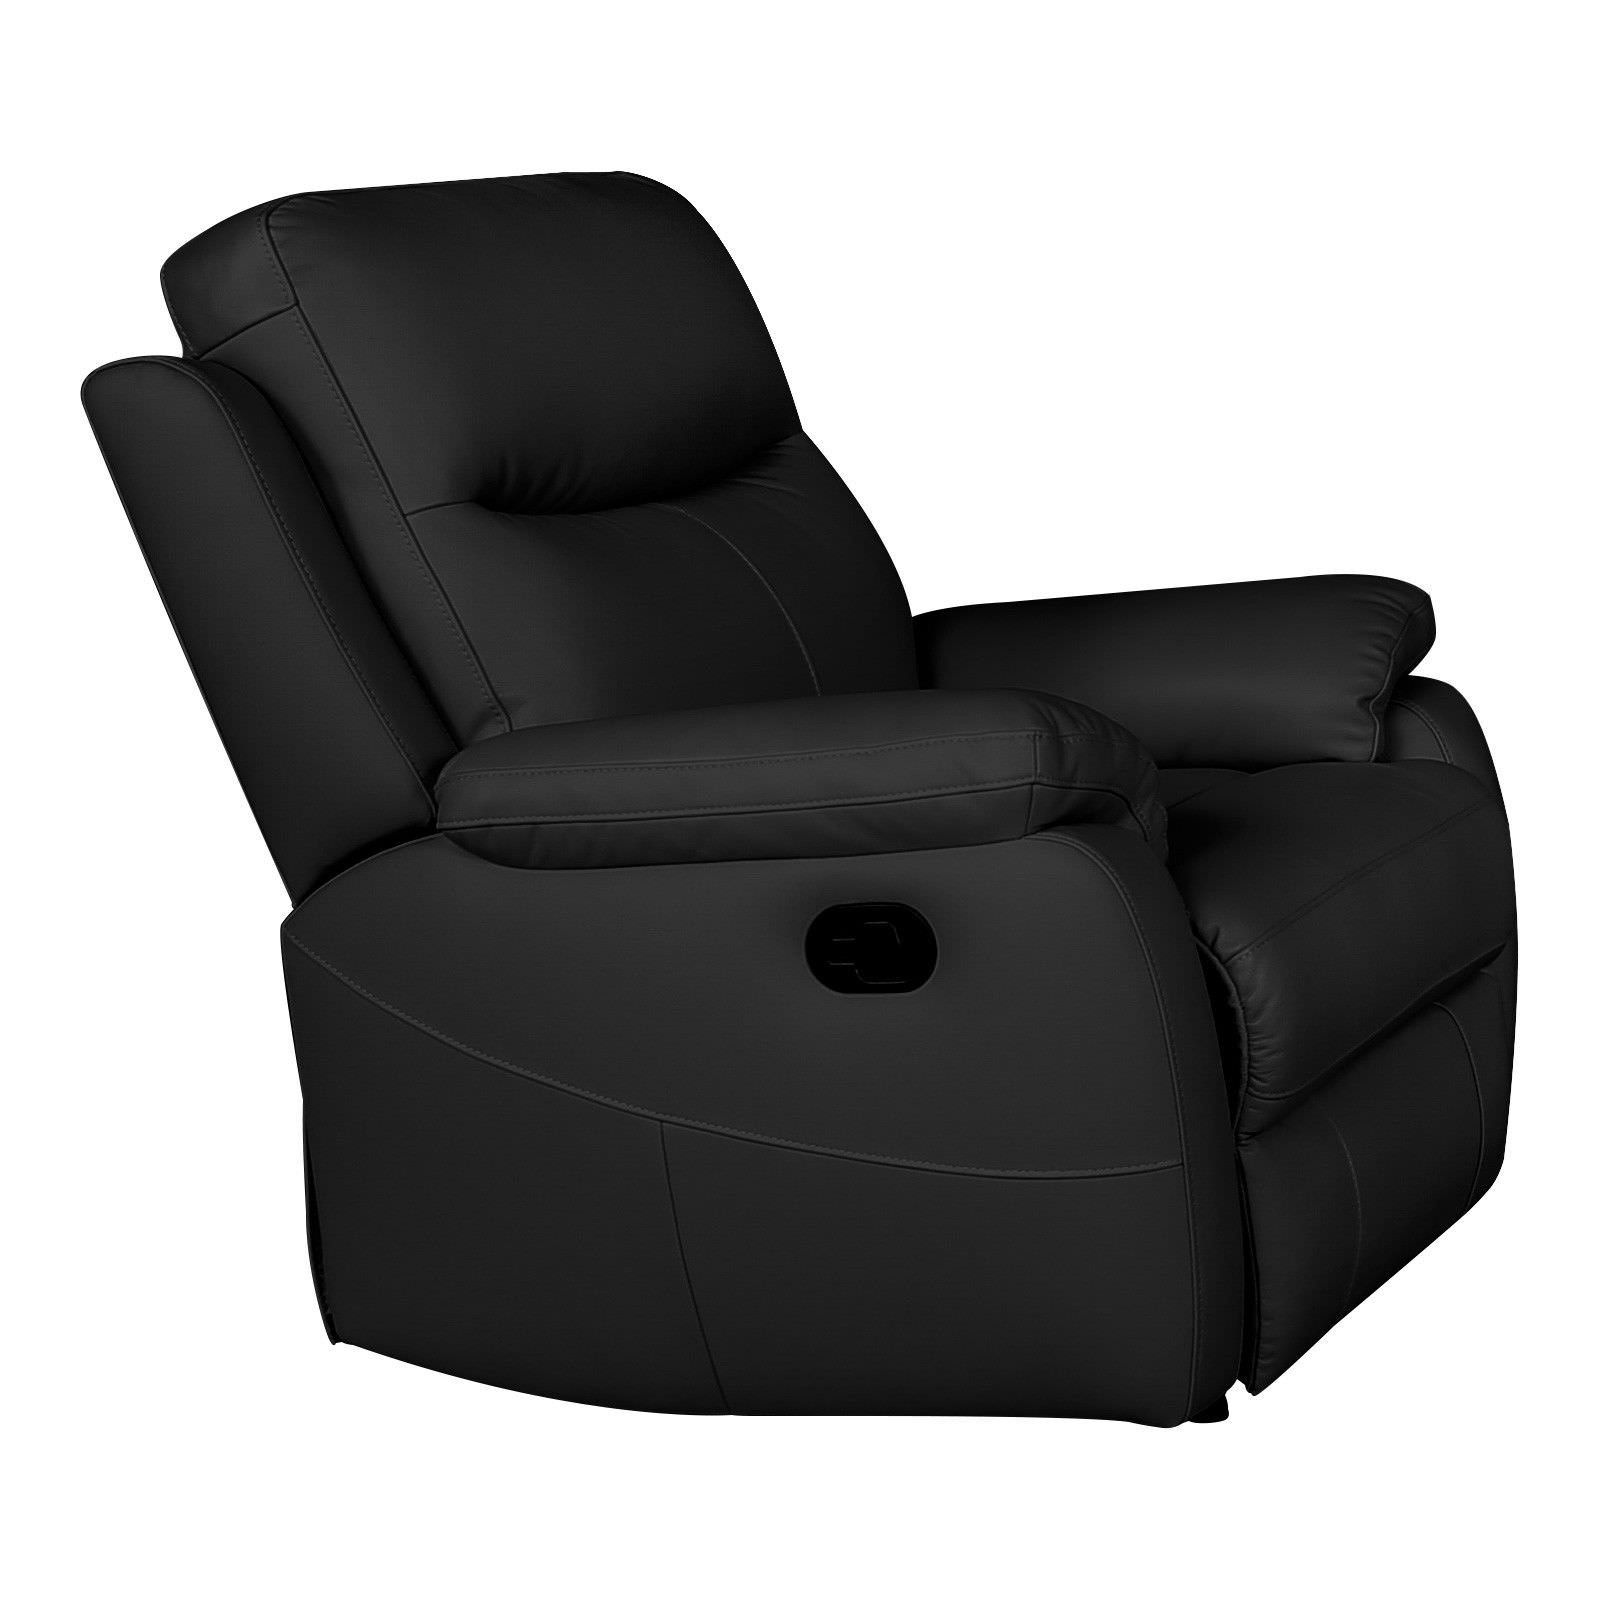 Colson Leather Recliner Lounge Armchair, Black